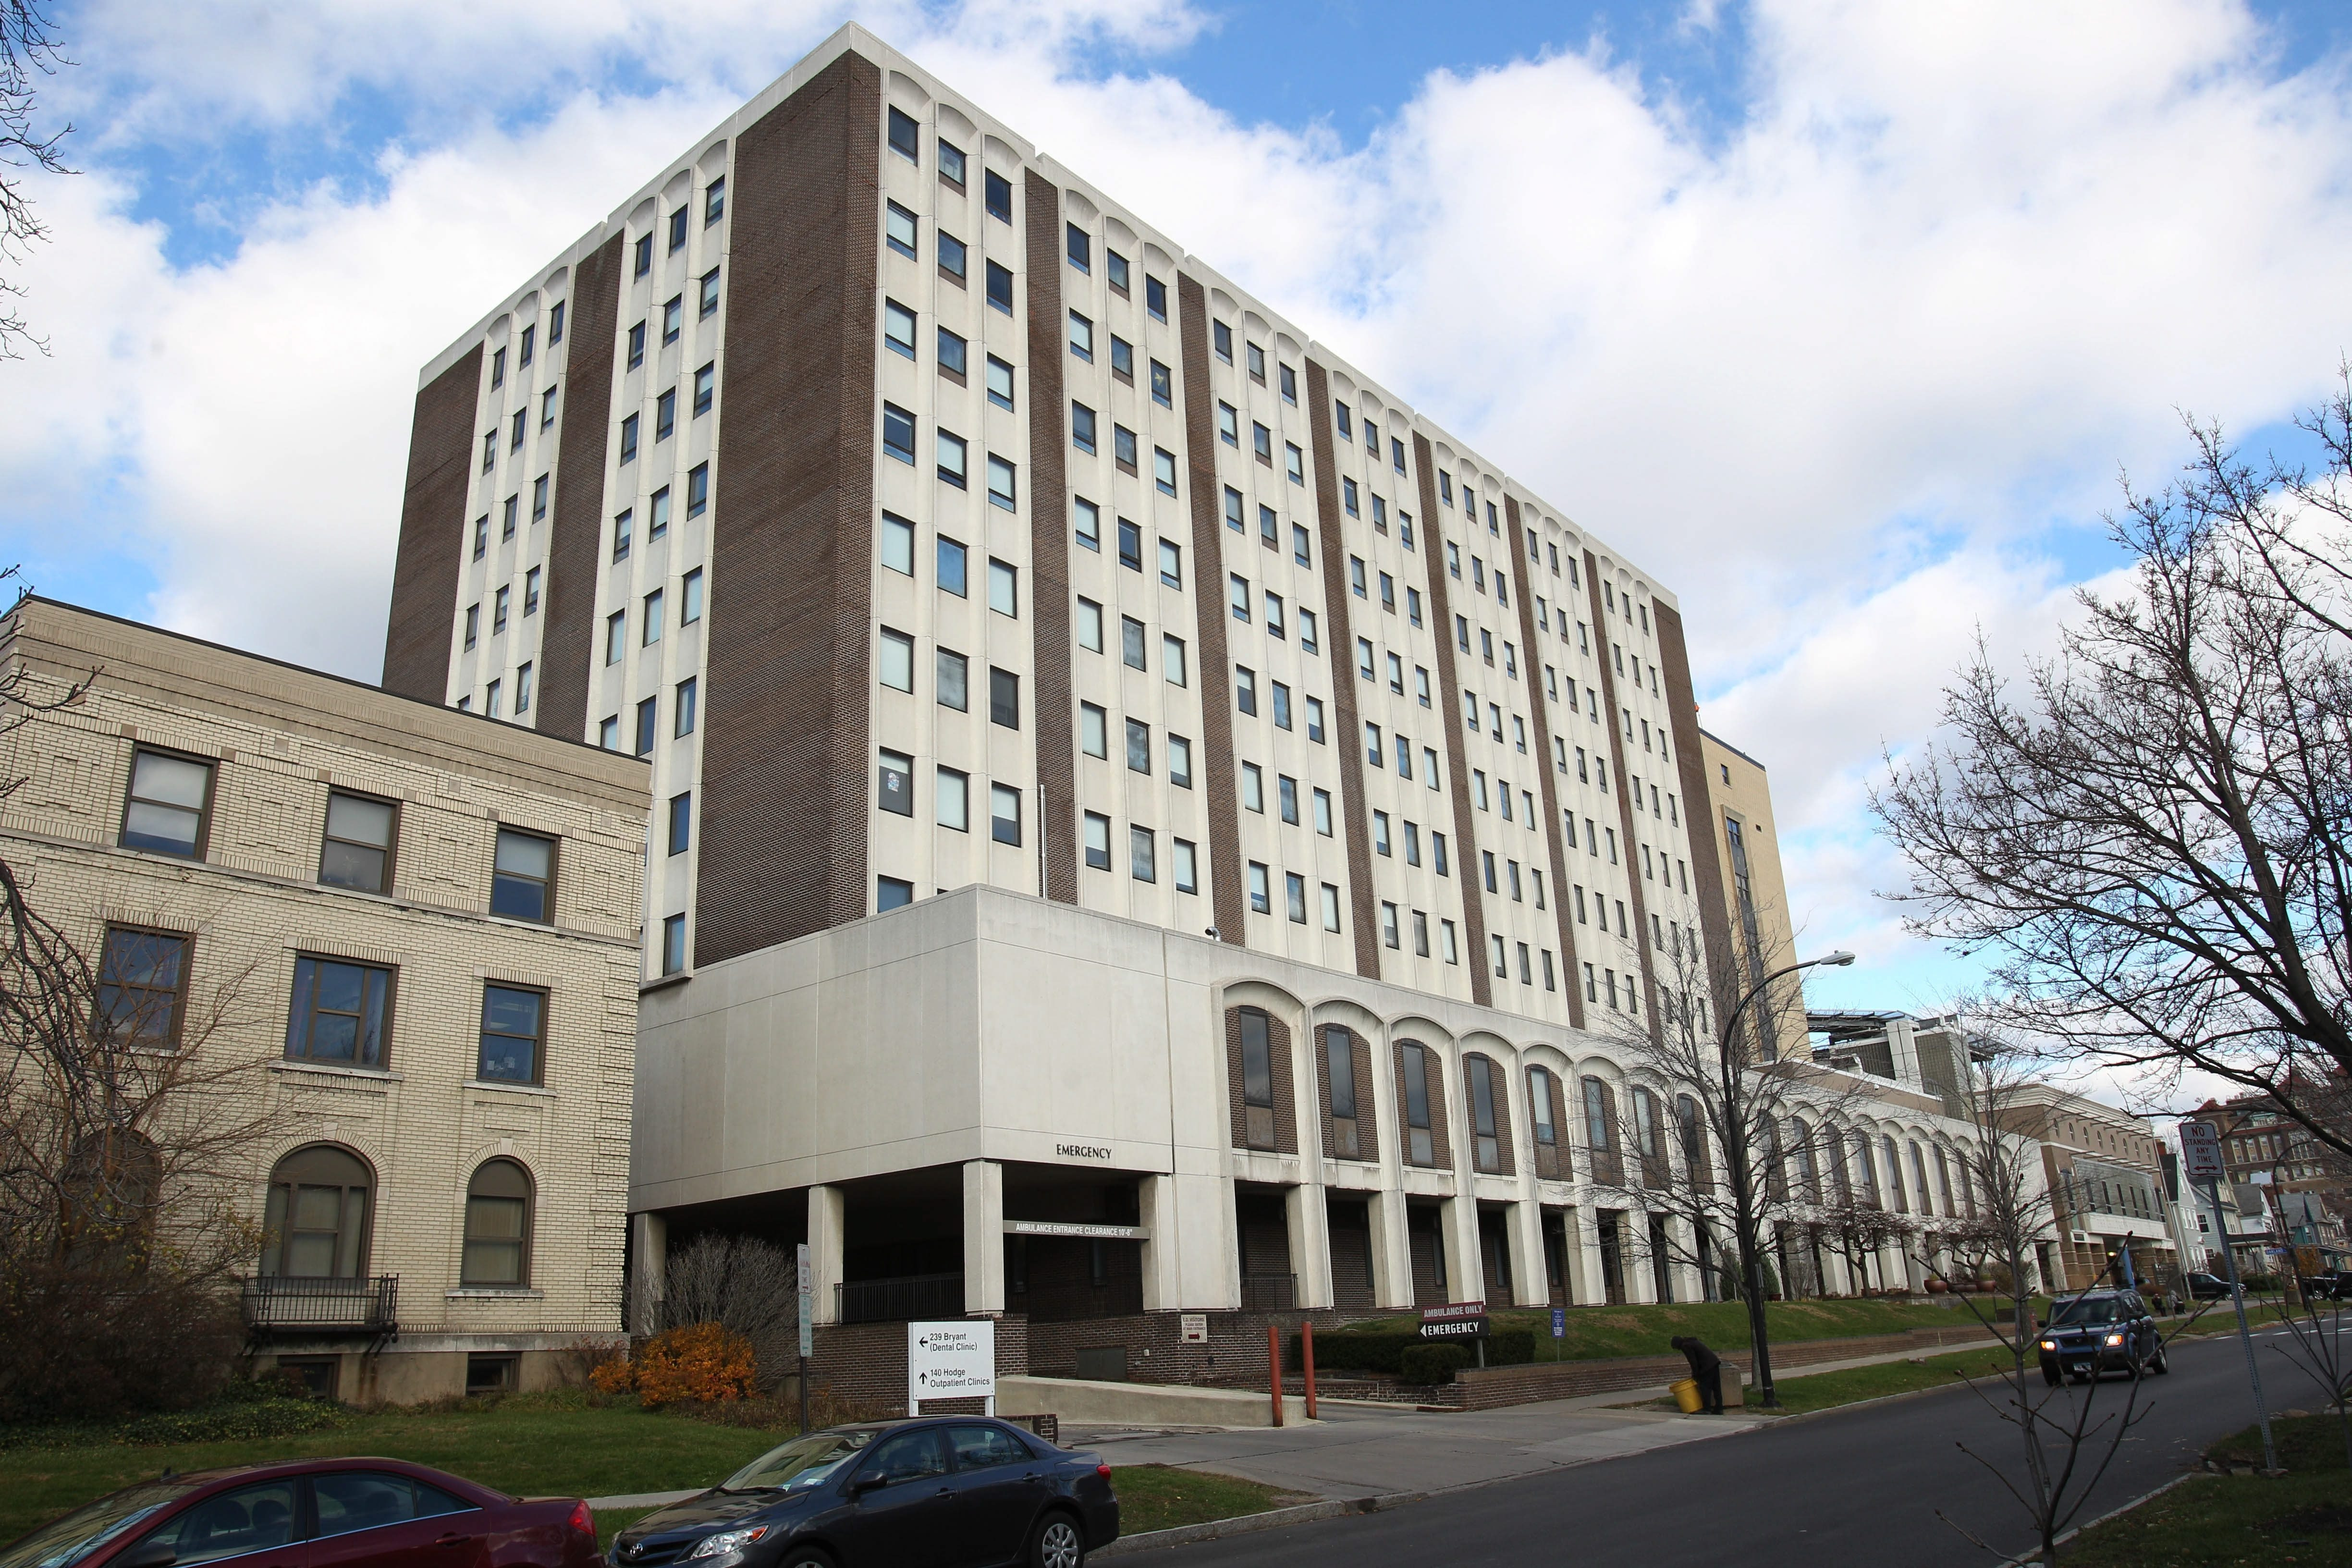 Should any Ebola cases happen to be diagnosed in Western New York, the patients would go to Women and Children's Hospital, above, or Erie County Medical Center. (Sharon Cantillon/Buffalo News file photo)